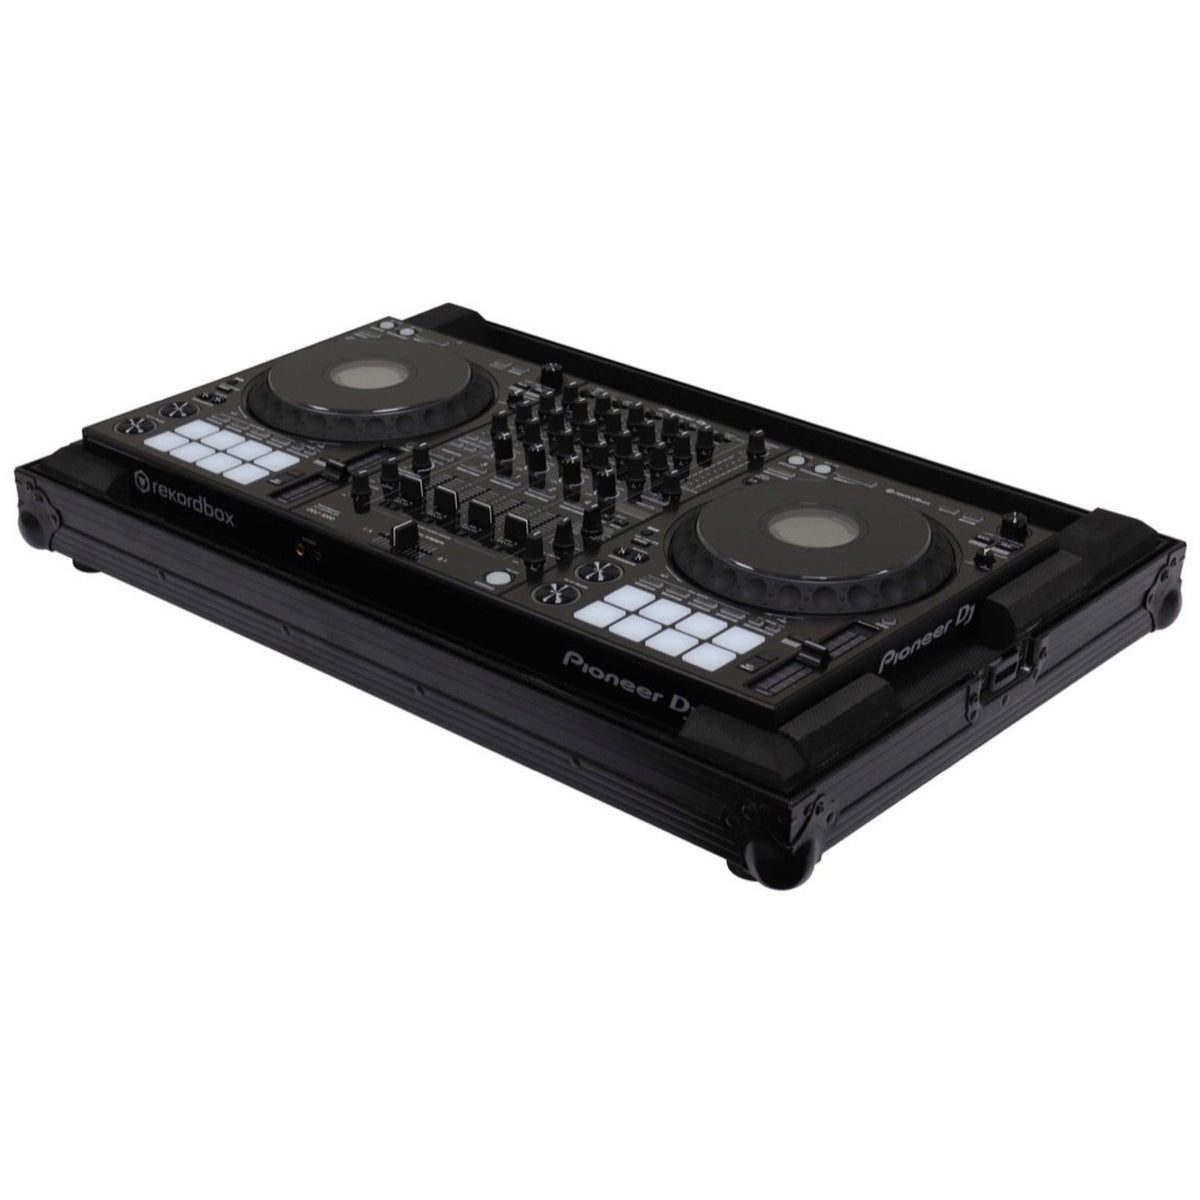 Odyssey FZDDJ1000BL Black Label Case for DDJ-1000